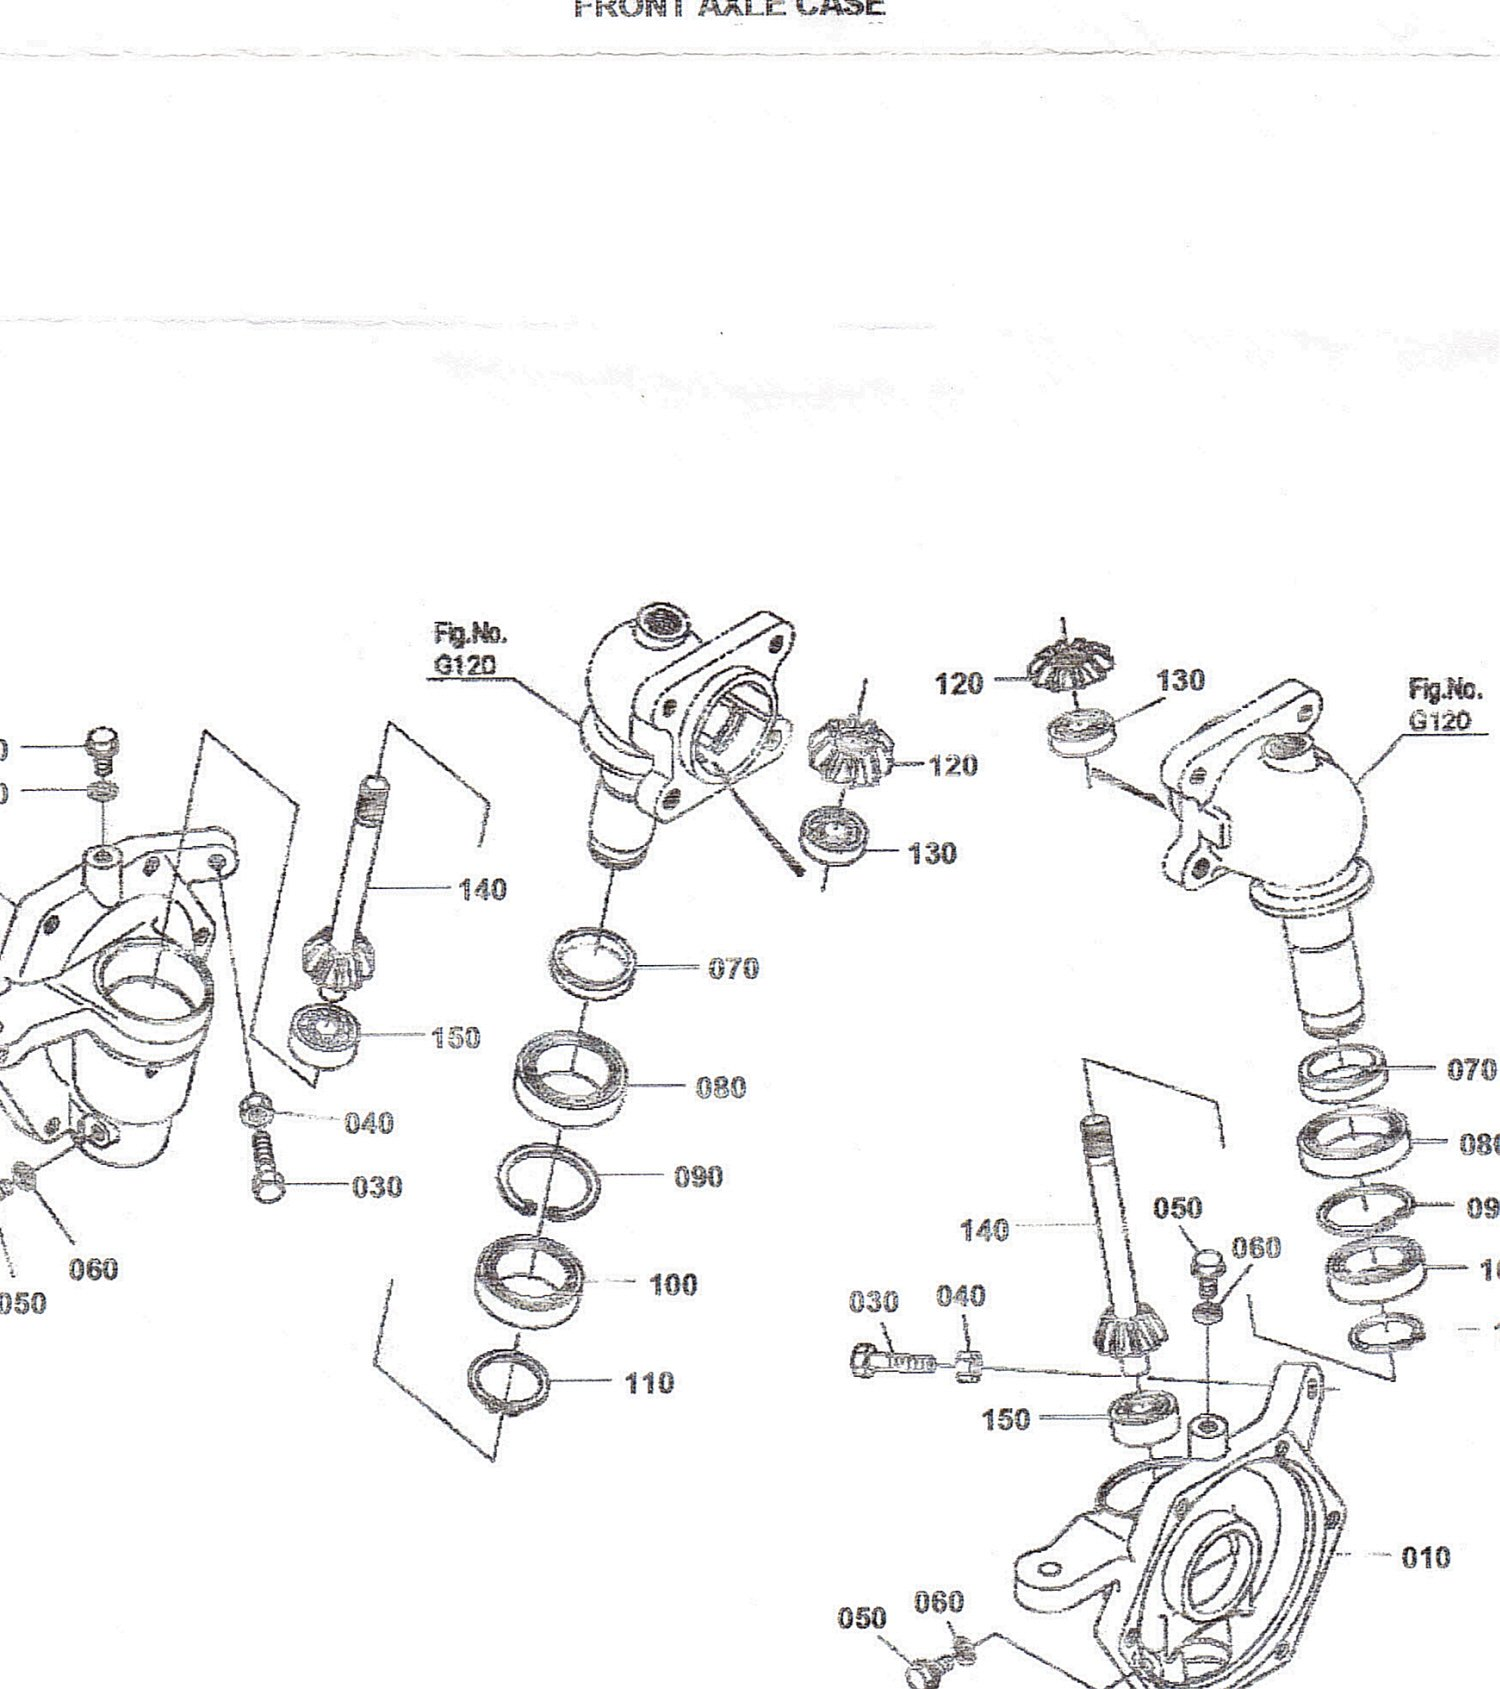 396035360956193700 together with Schematic Of Woods Brush Hog moreover Cub Cadet 108 Parts Diagram additionally M154958 John Deere Belt also 488429522059877738. on international mower deck parts diagram